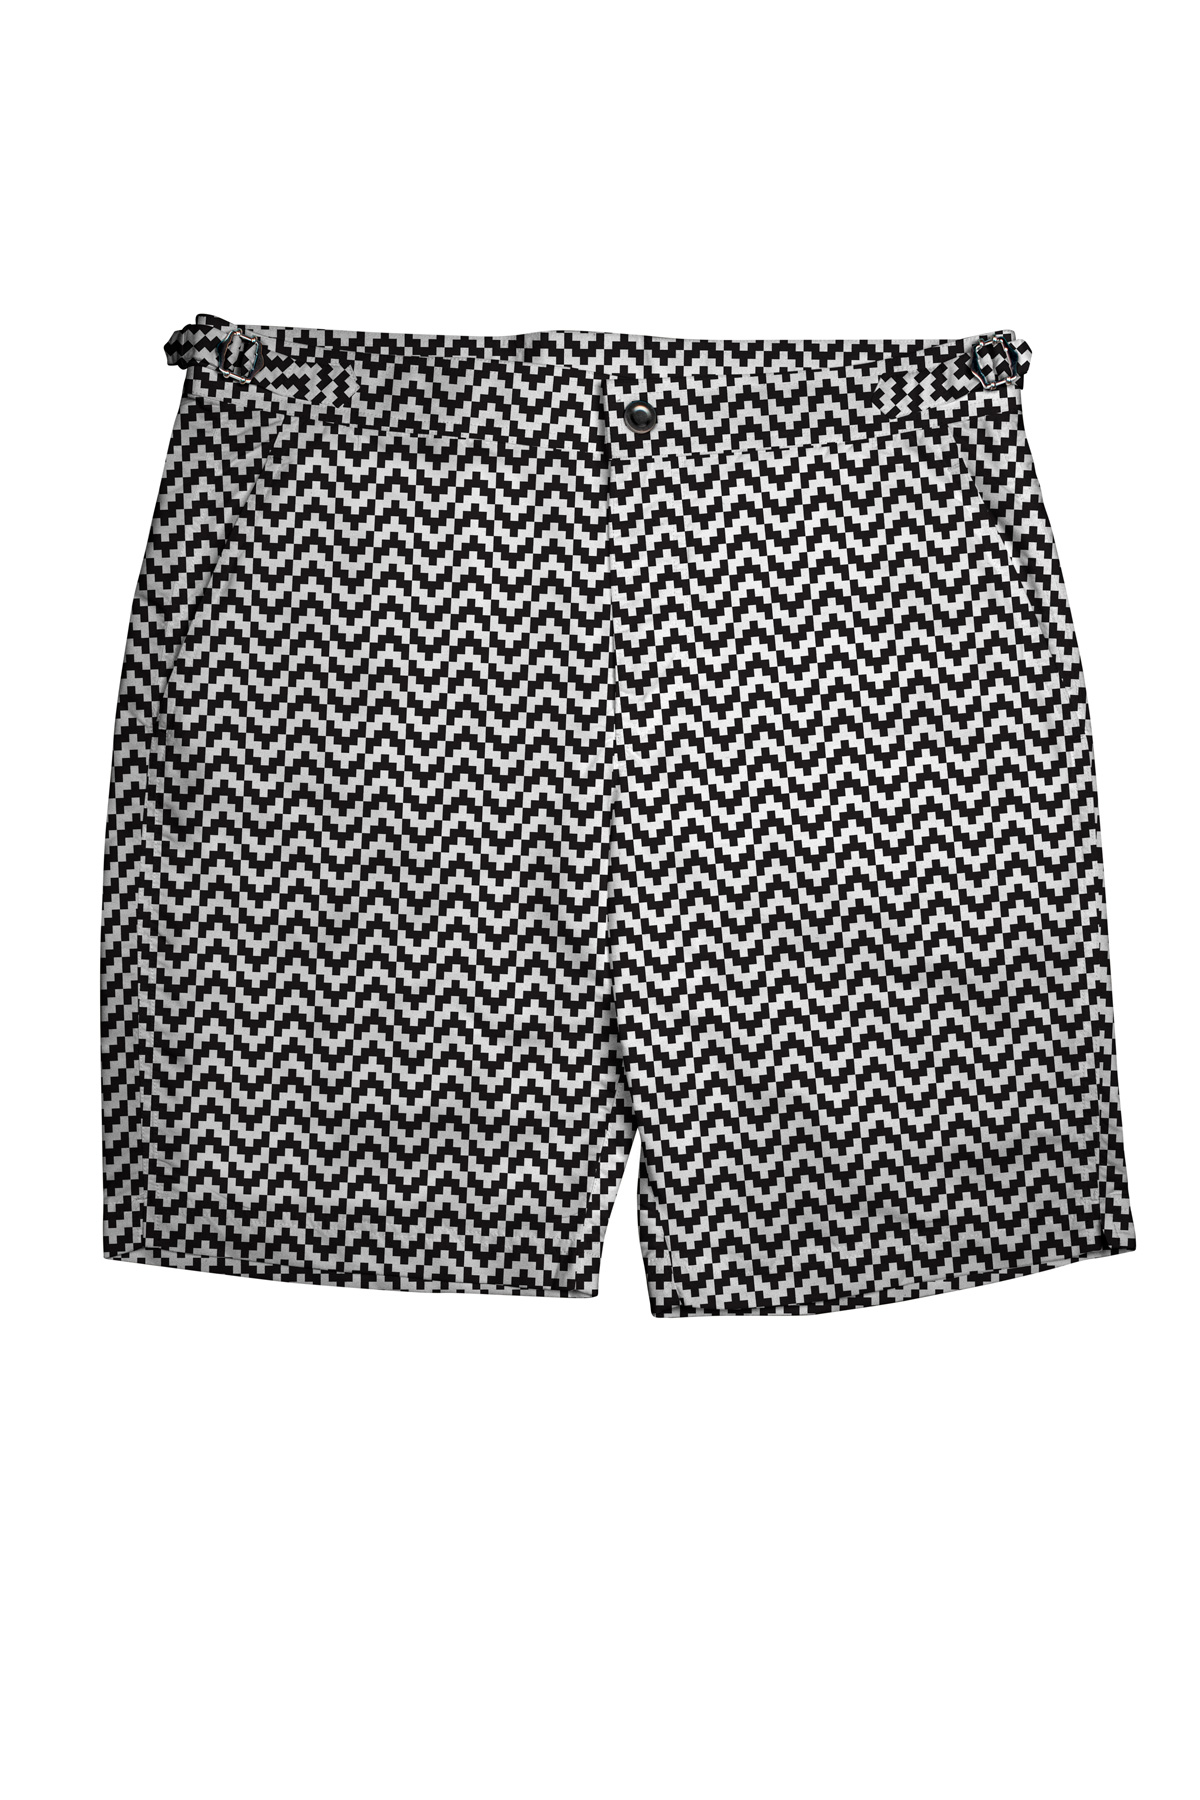 Black & White Zig-Zag Swim Shorts